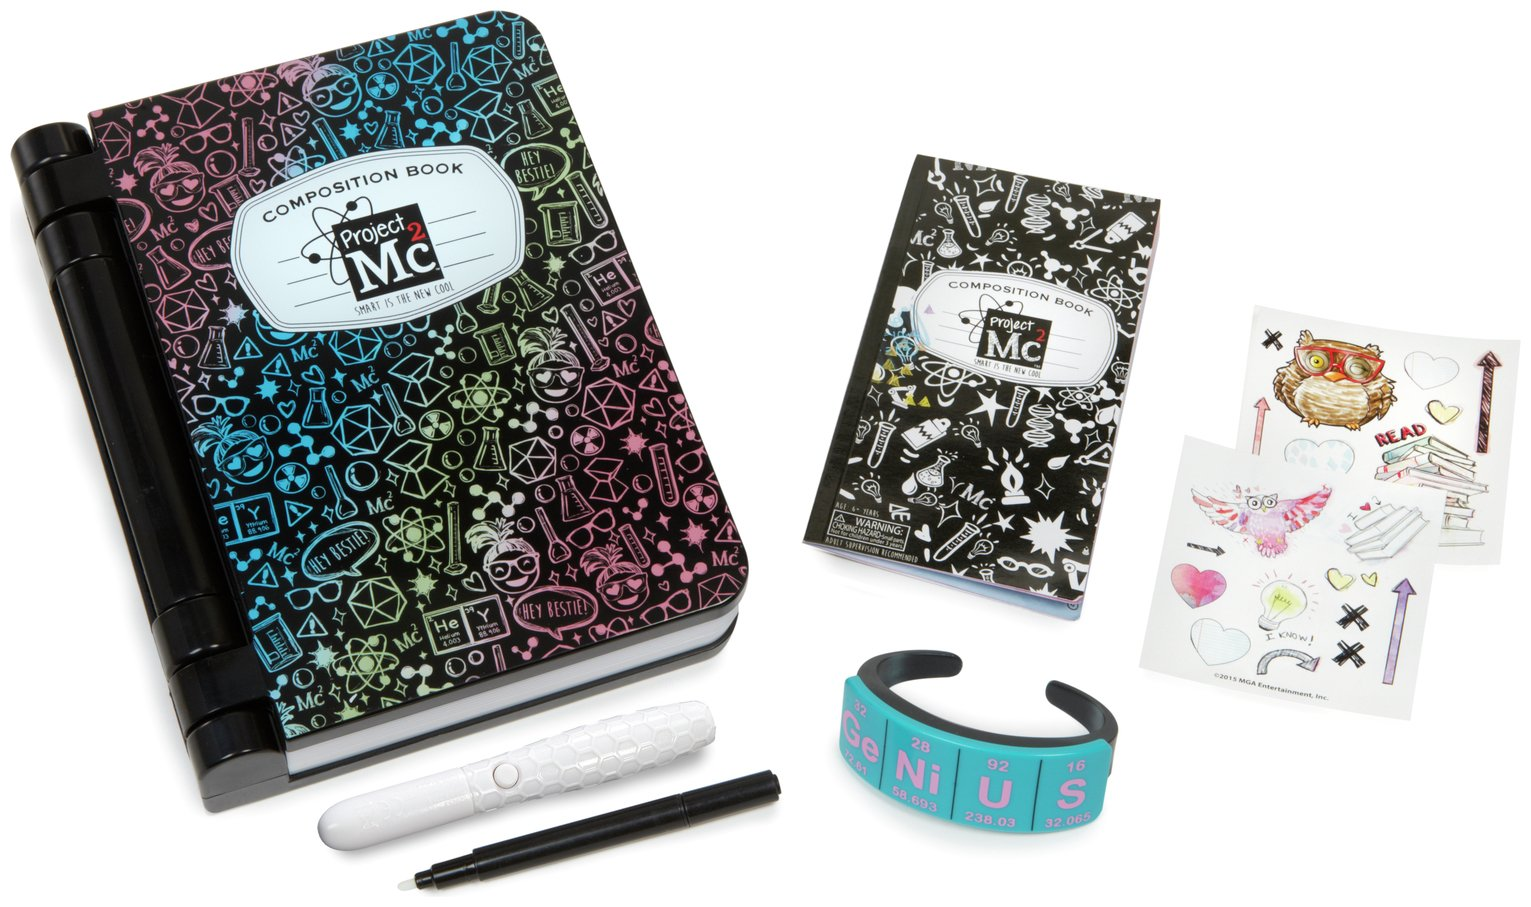 Project MC2 Adisn Journal Spy Notebook from Project Mc2